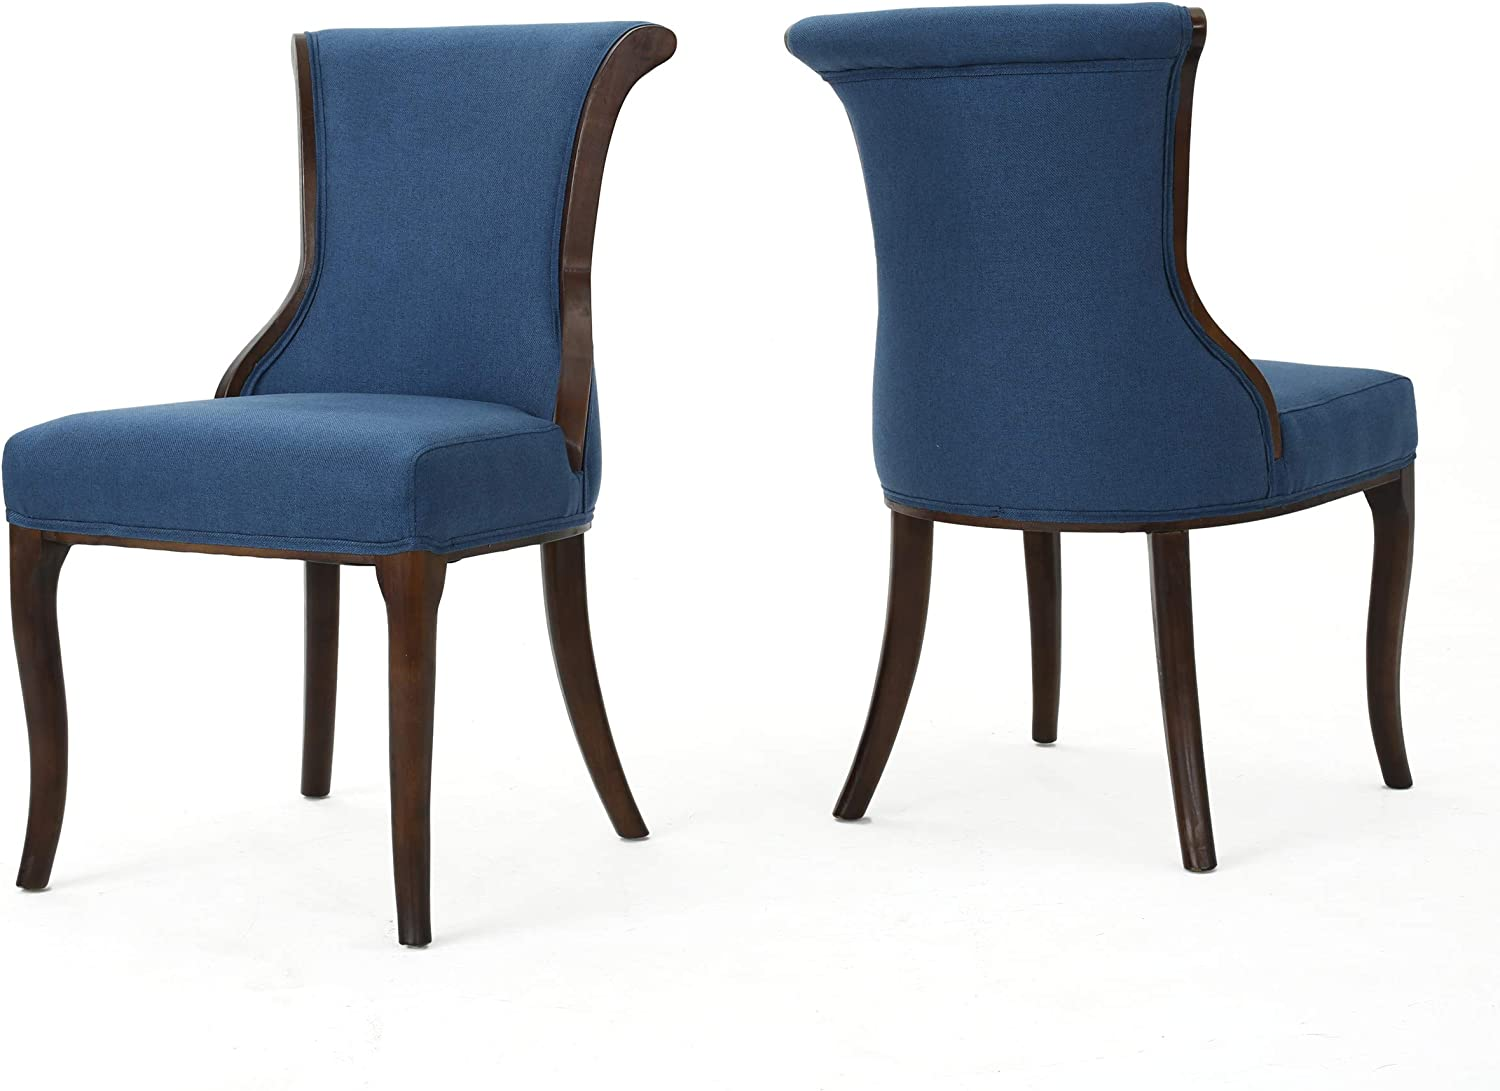 Christopher Knight Home Louisville-Jefferson County Mall Lexia Classic Dark Max 54% OFF Fabric Chair Dining